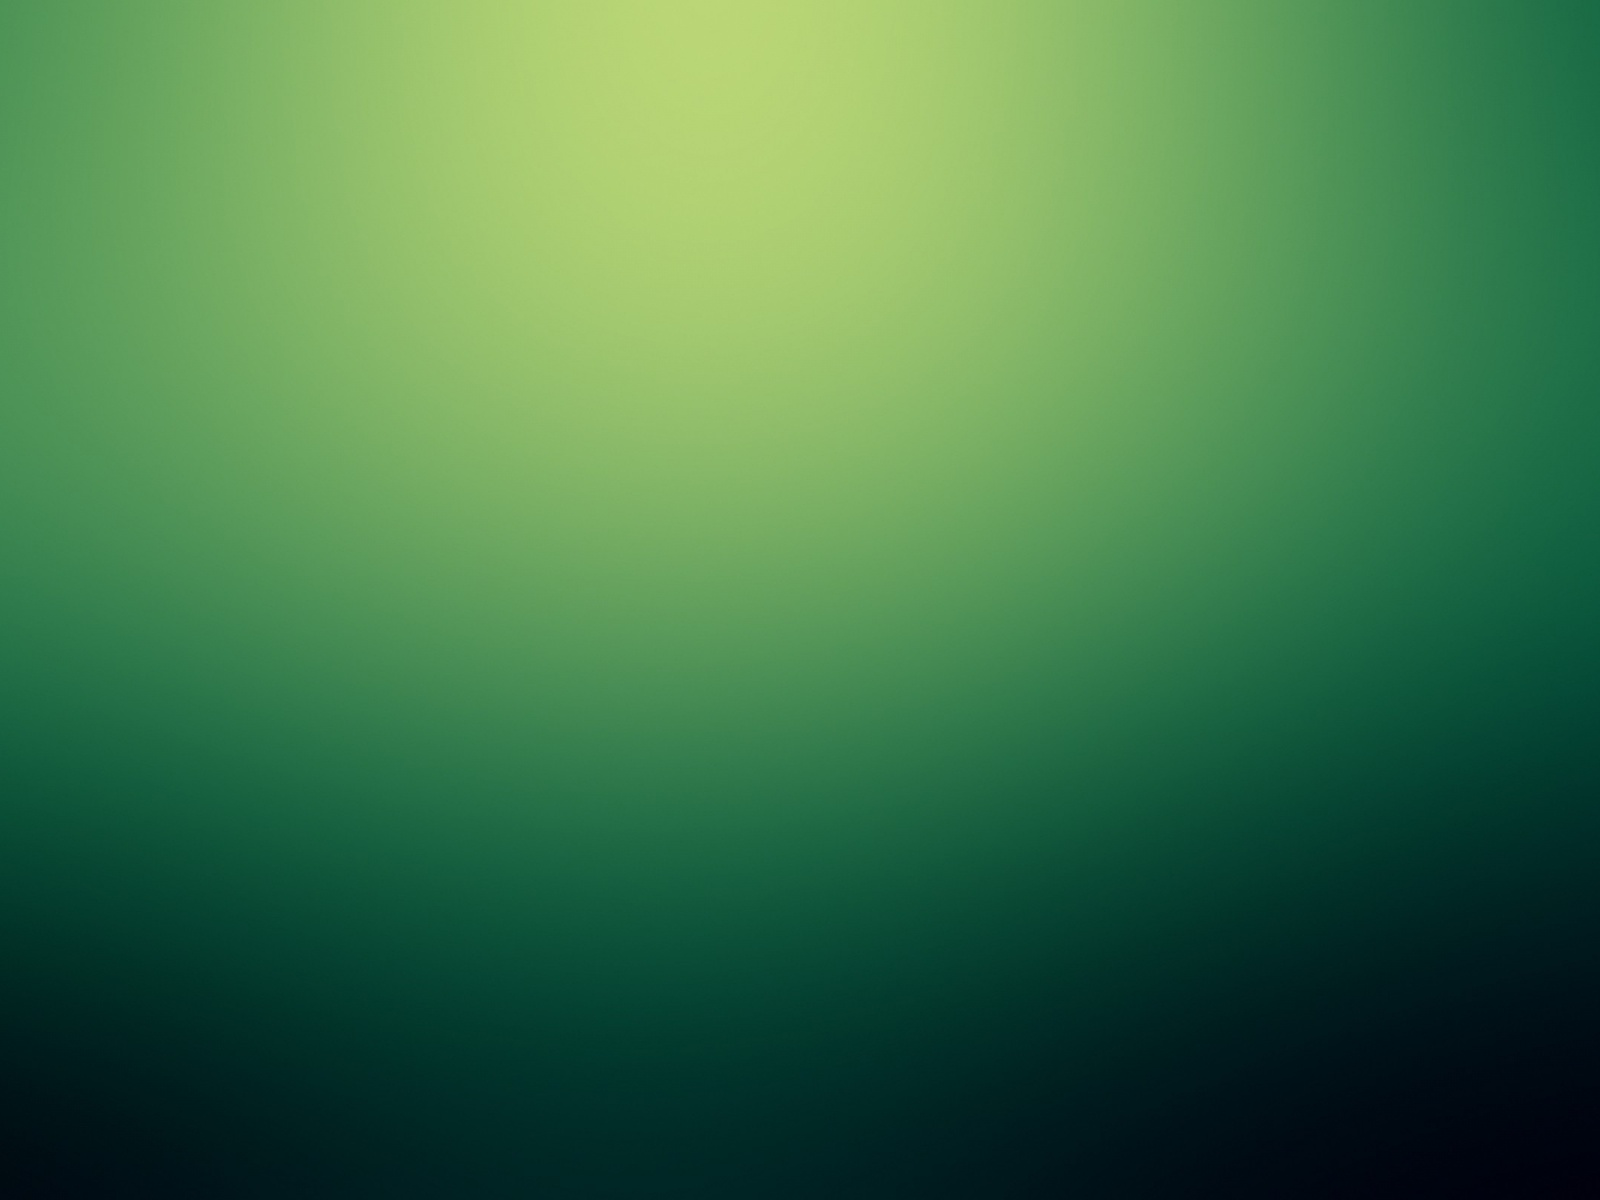 Green Gradient Background Images Green Gradient Background